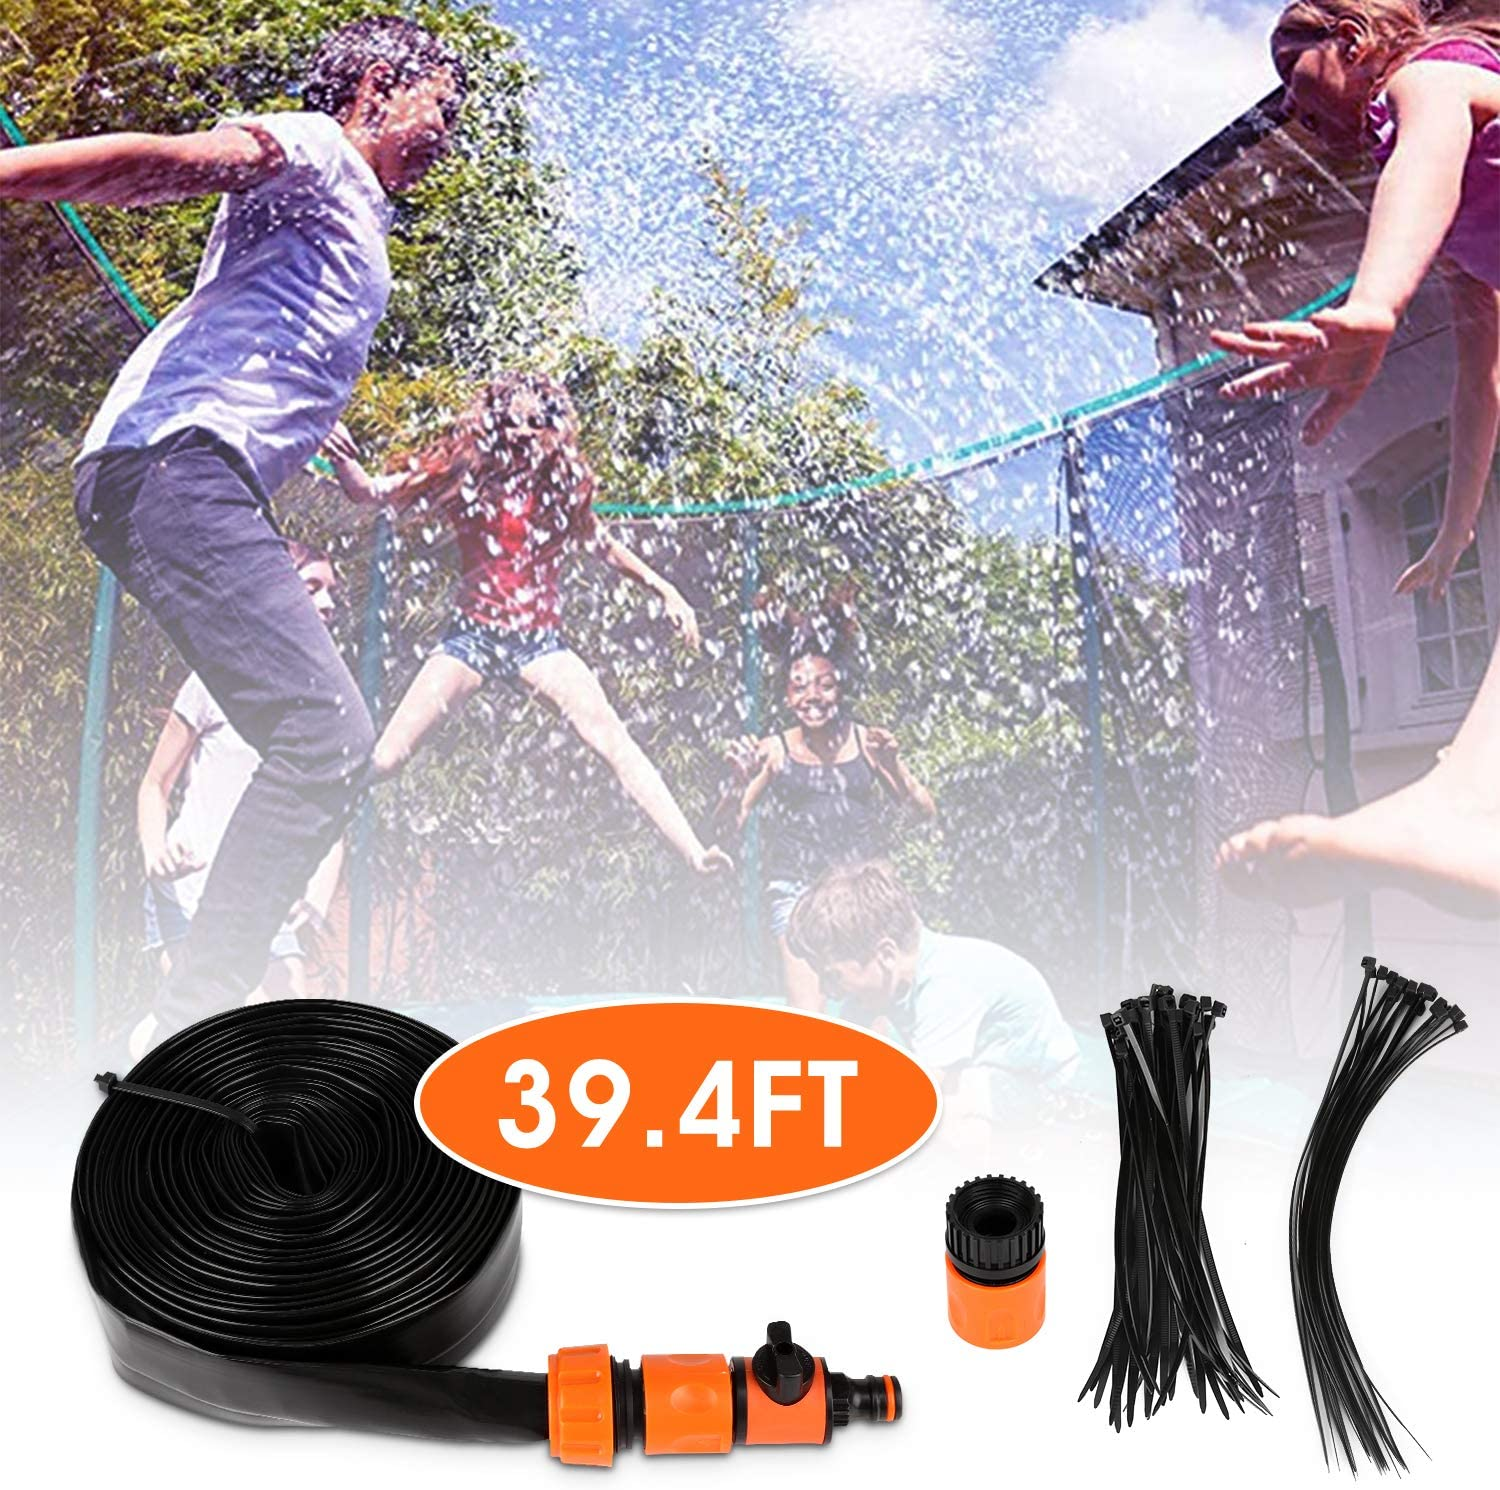 Trampoline Sprinkler, Summer Outdoor Backyard Water Fun, Spary Water Play Game Sprinklers for Kids Outdoor Spary Water Park Outdoor Misting Cooling System with Special Hole to Easy Installation (39FT)